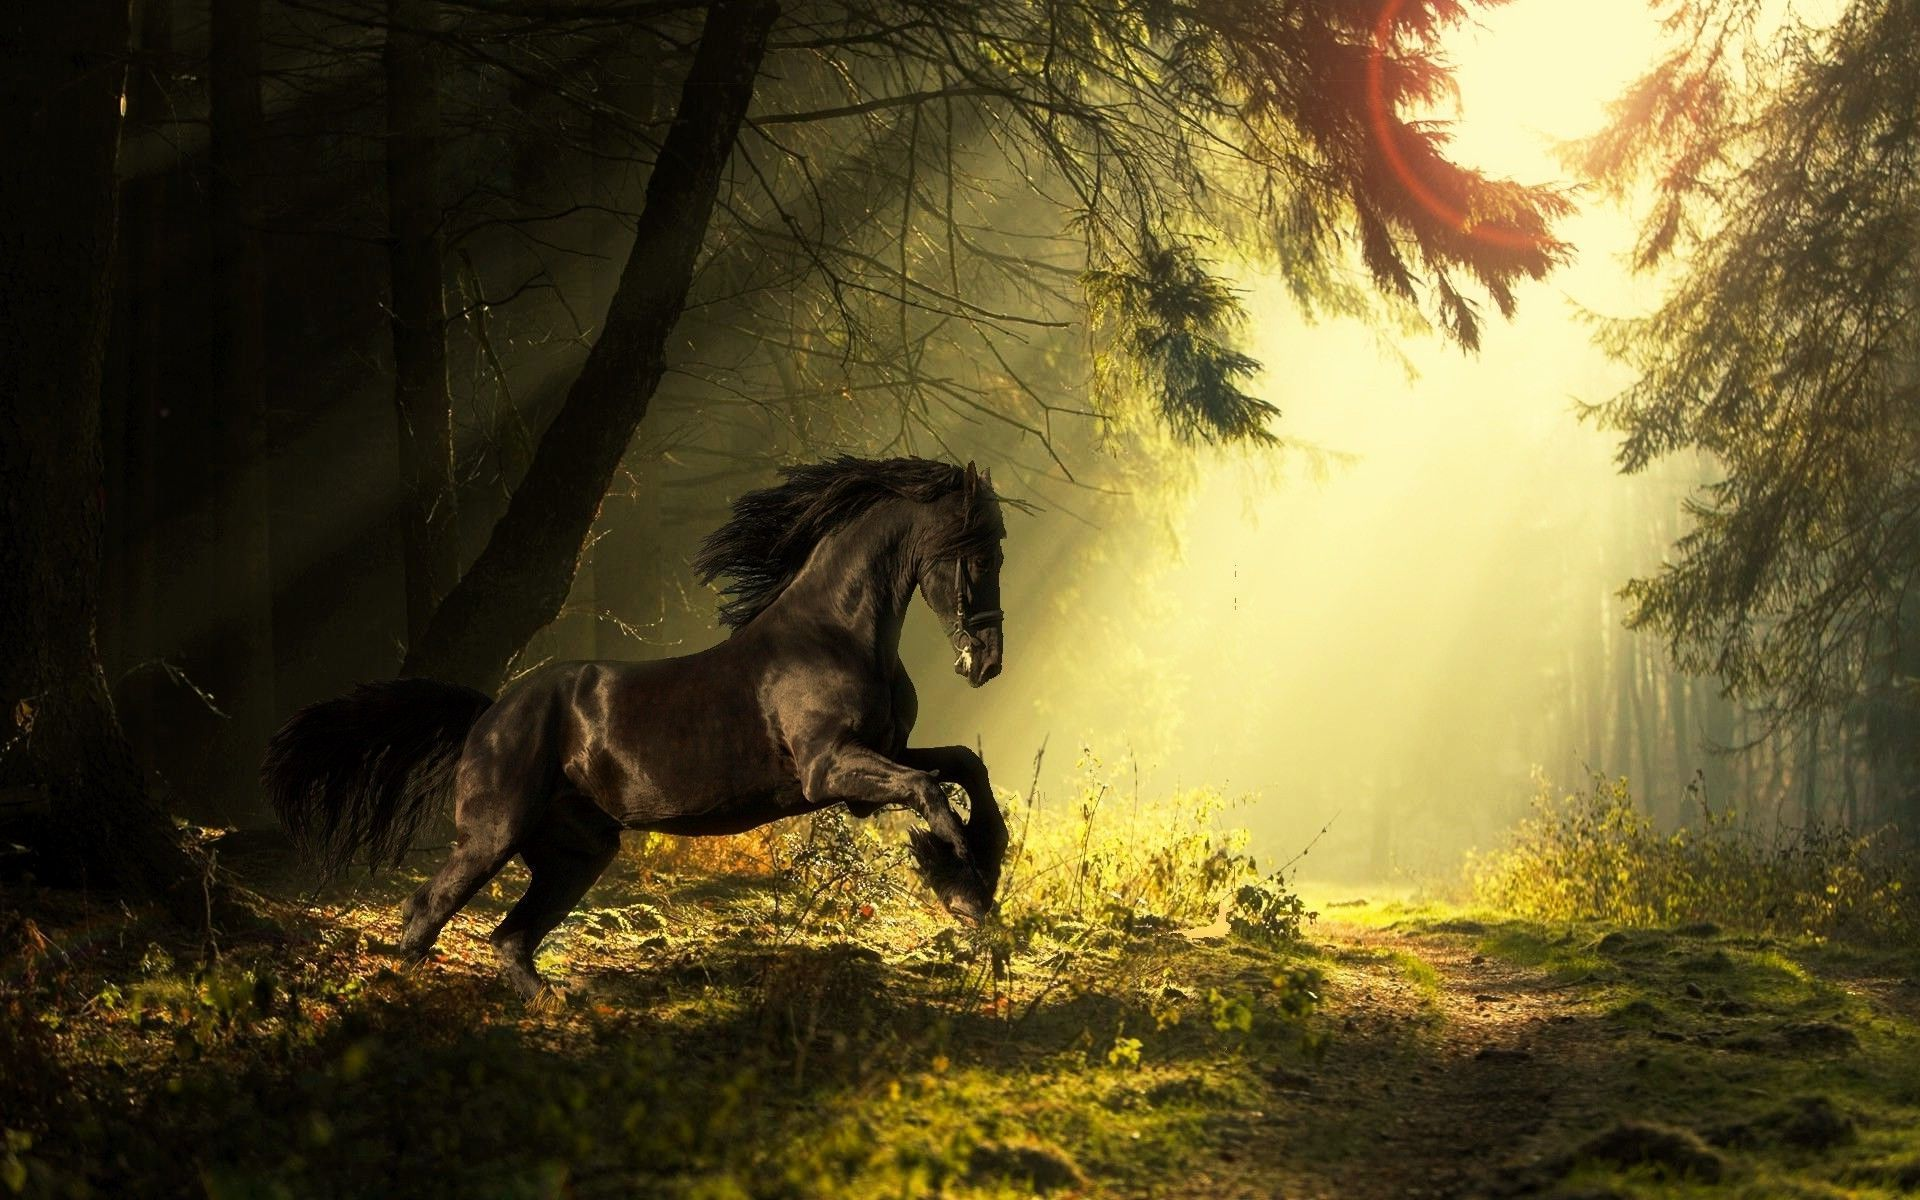 Hd wallpaper horse - Pictures Of A Motorcycle With Amarcan Flag In Backround Download Horse Wallpaper Jungle Background Hd